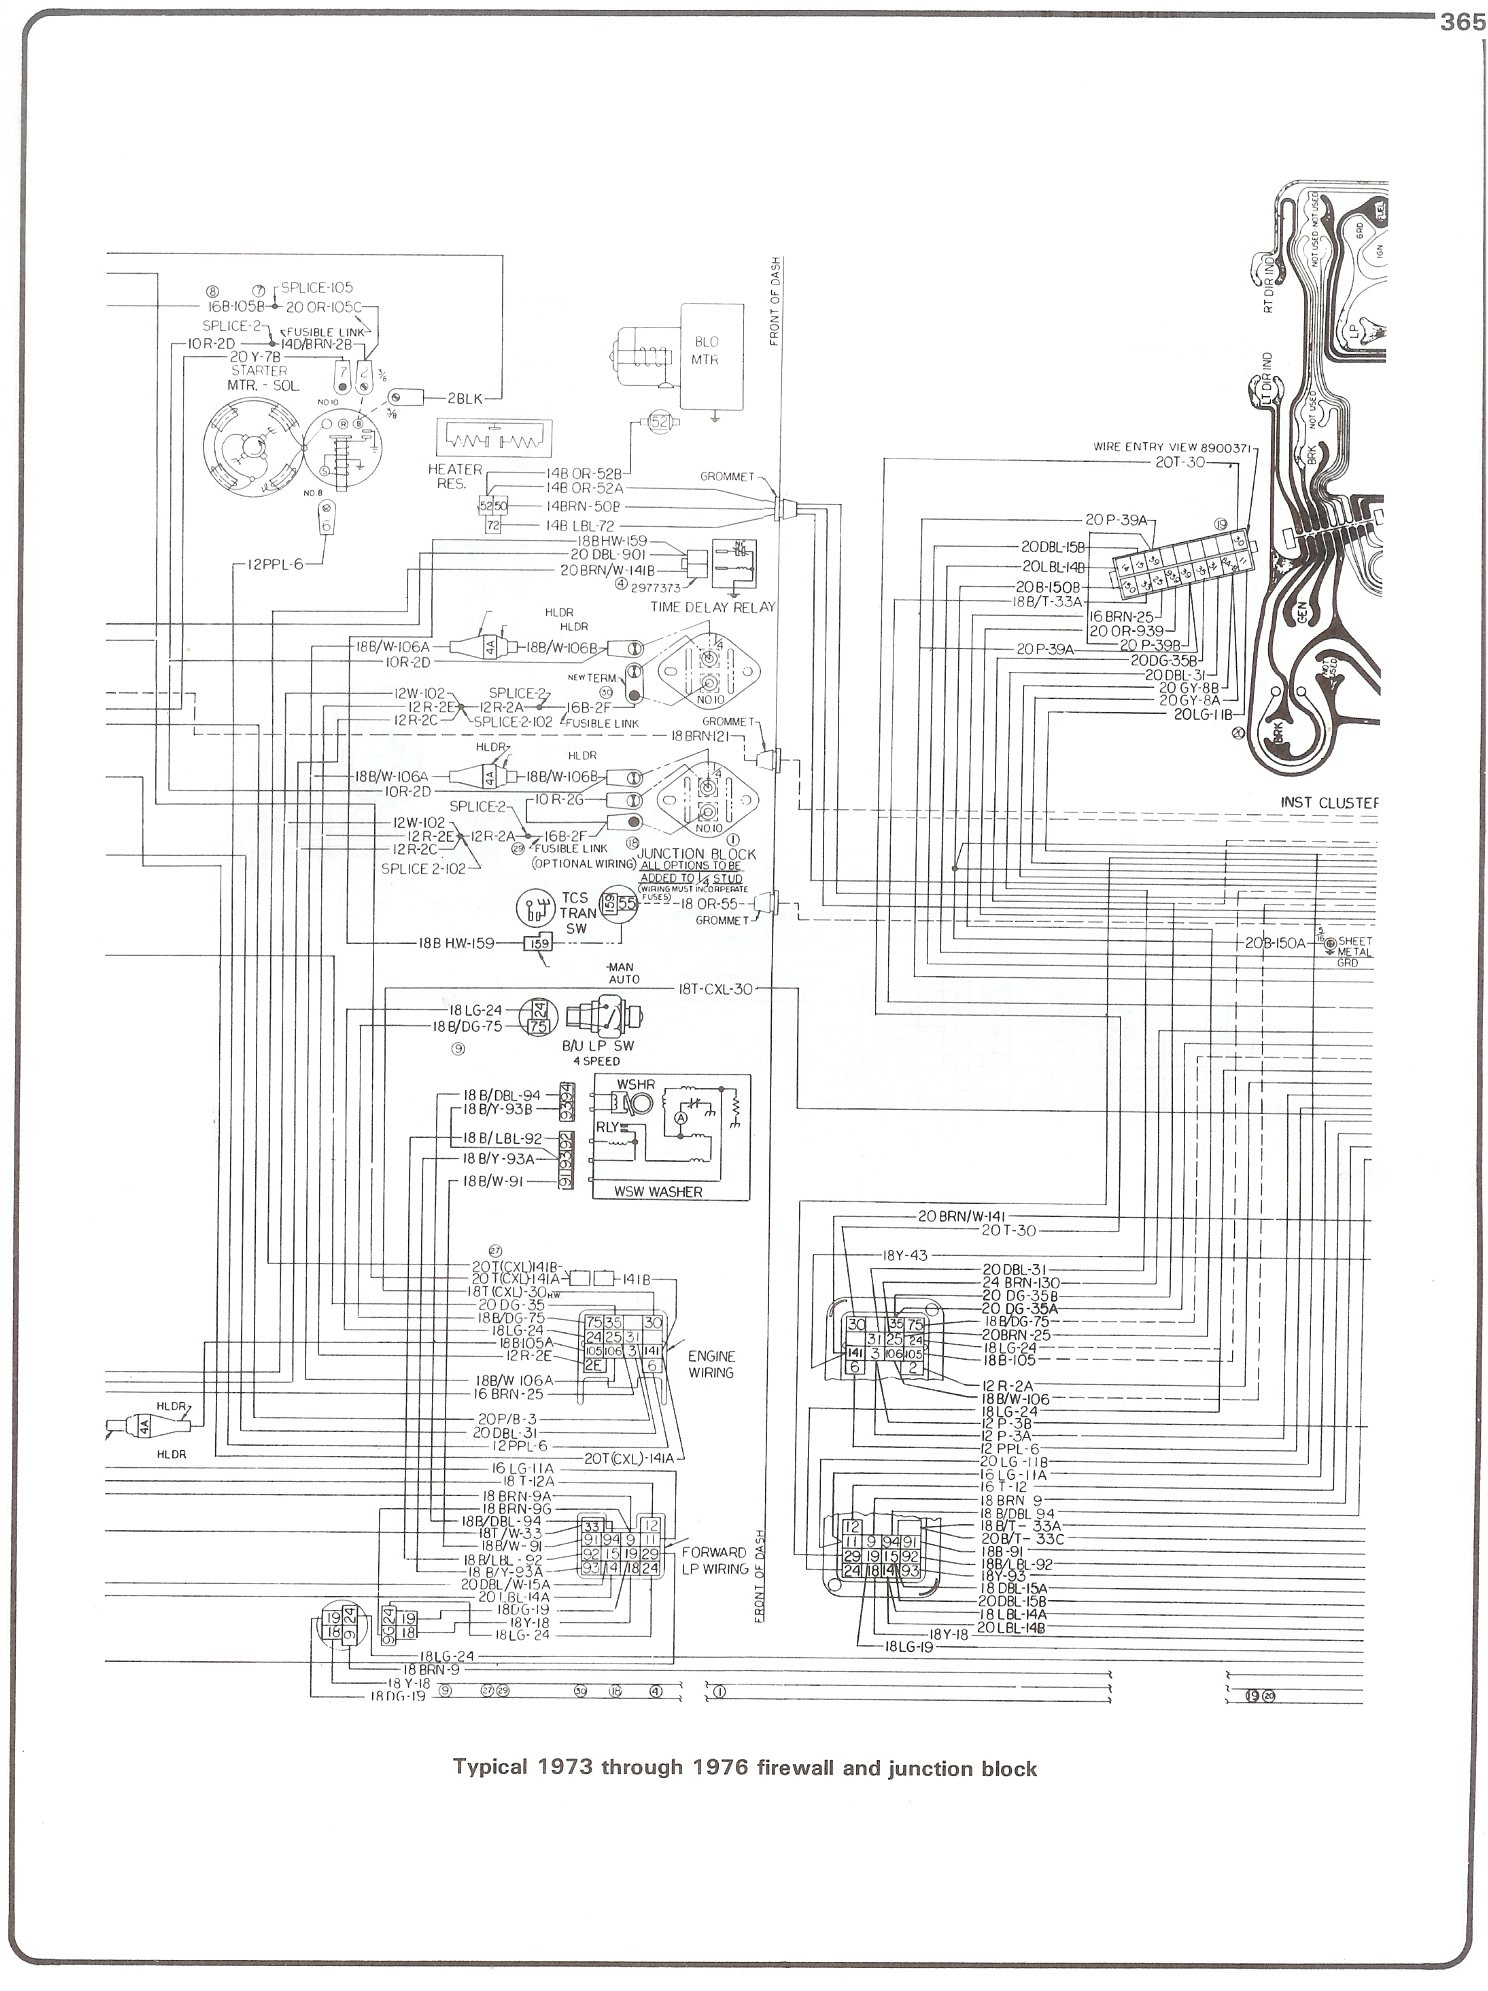 73 76_firewall_junct complete 73 87 wiring diagrams 1984 chevy truck fuse box at n-0.co